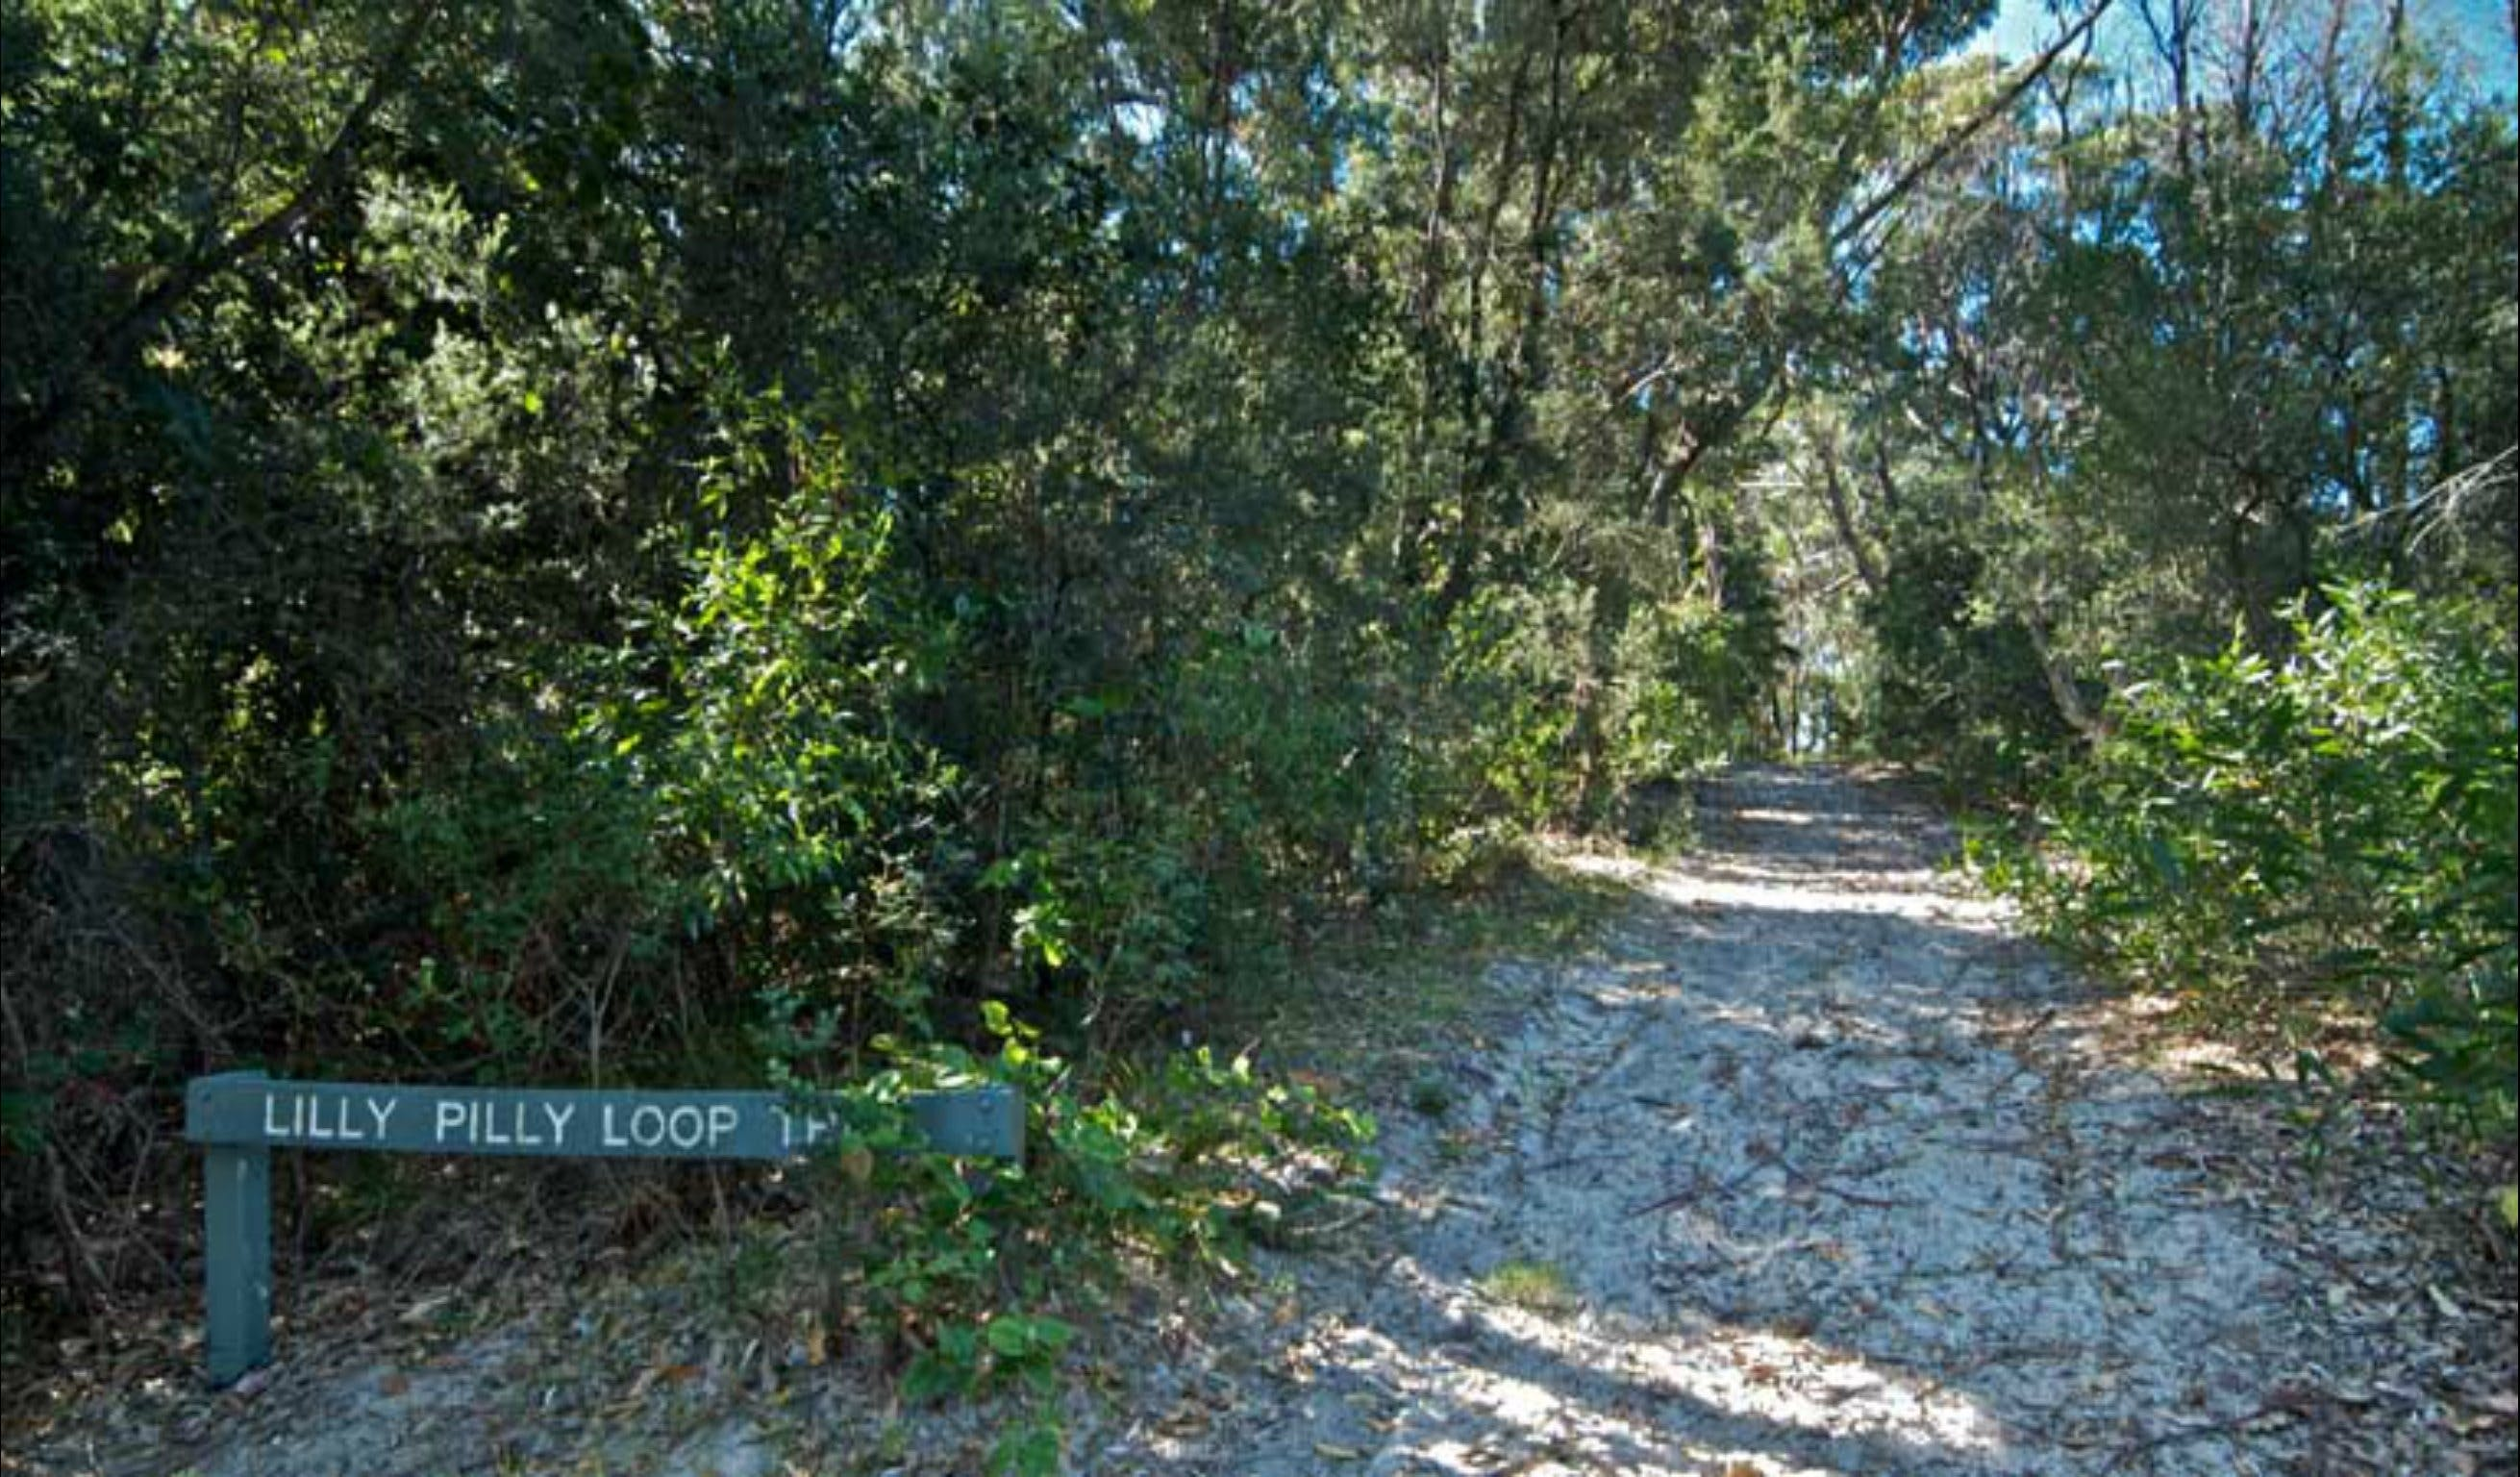 Lillypilly loop trail - Broome Tourism